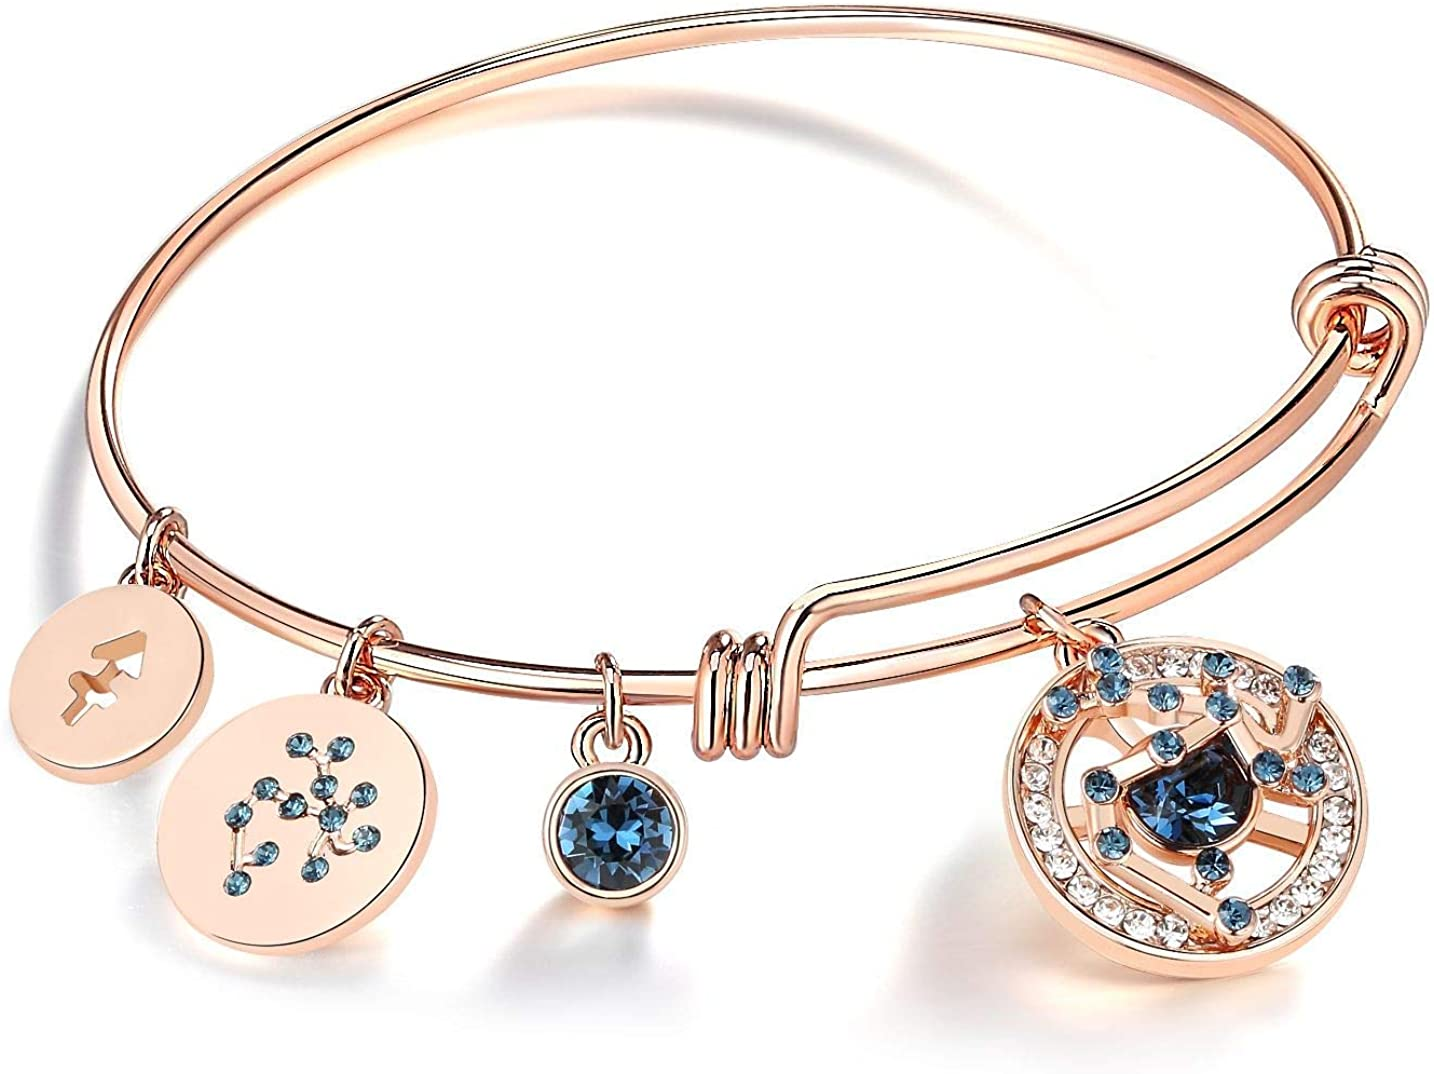 Leafael Superstar Zodiac Ranking TOP13 Expandable Bangle Jacksonville Mall Made Pr with Bracelet